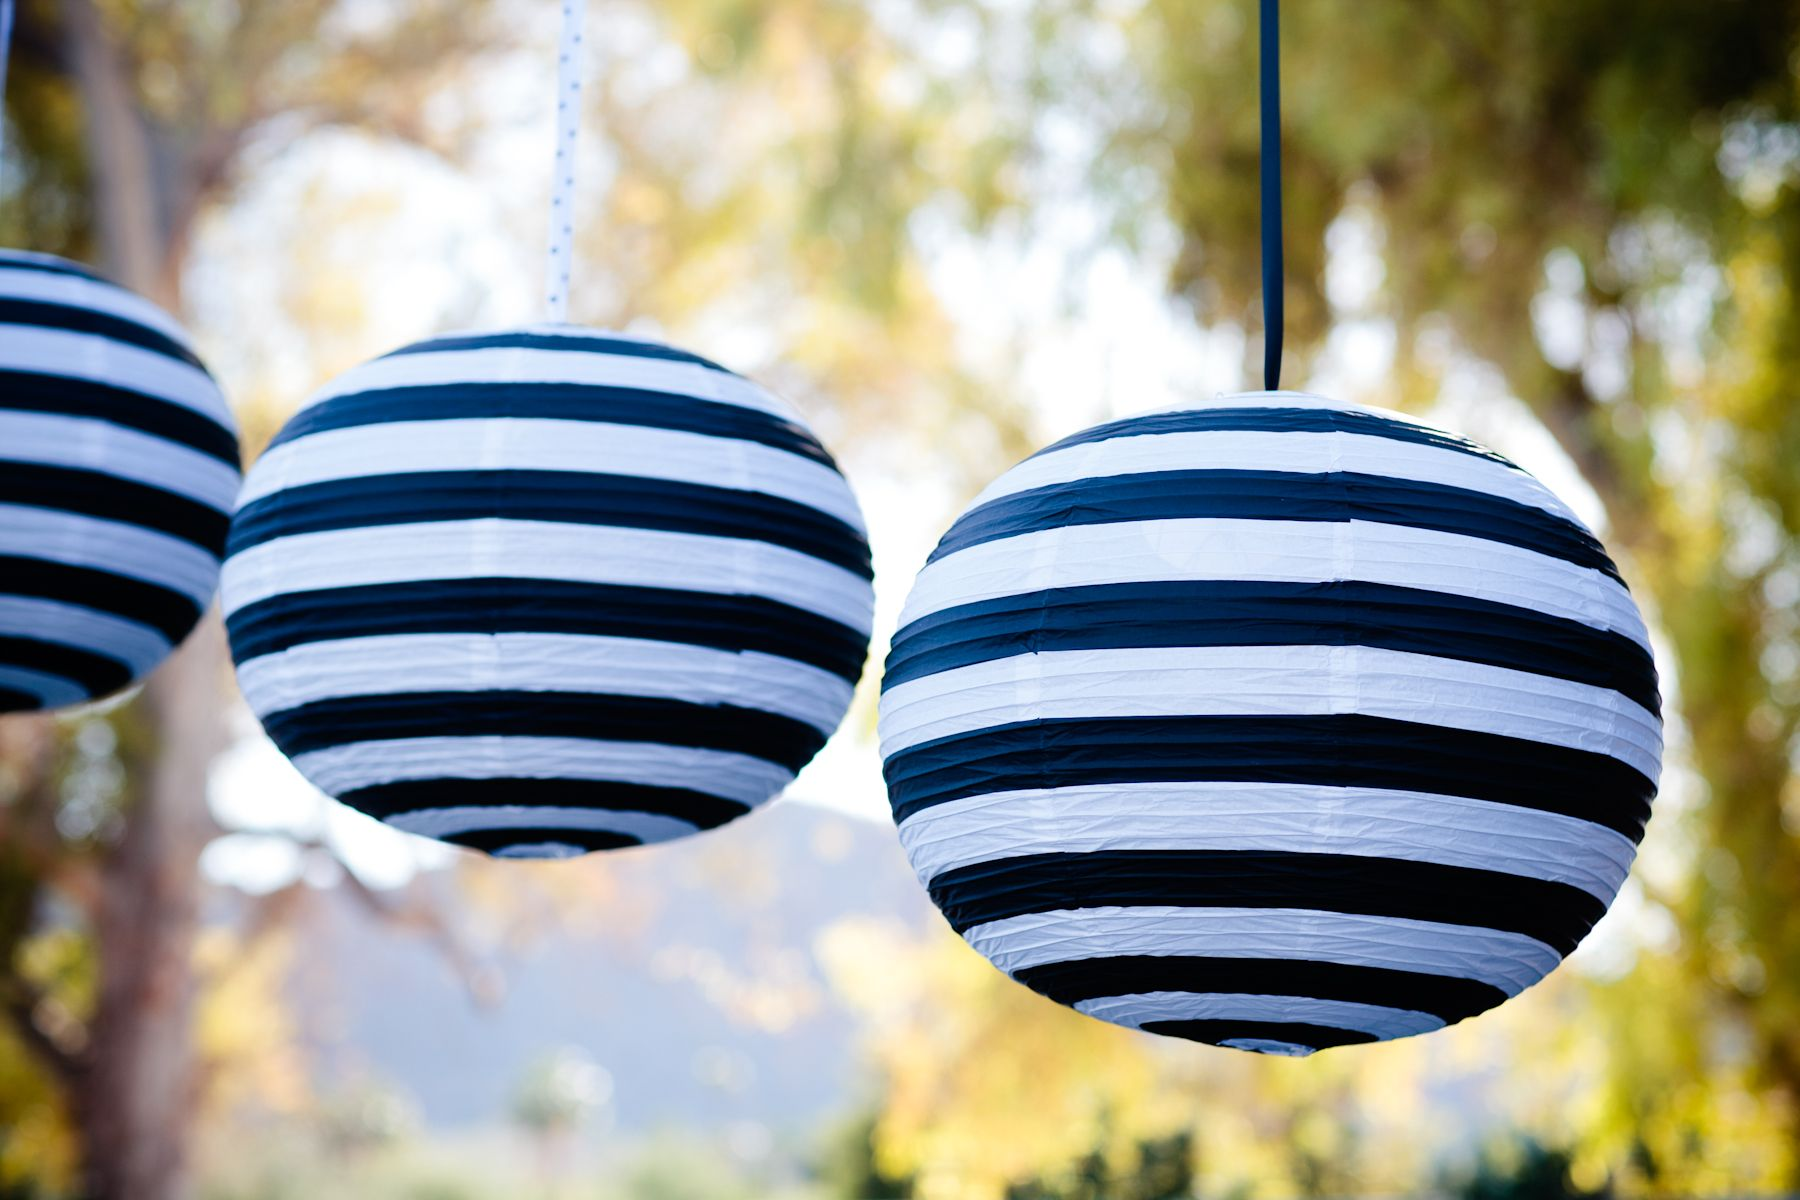 Hanging black and white striped lanterns for decor at the outdoor cocktail reception